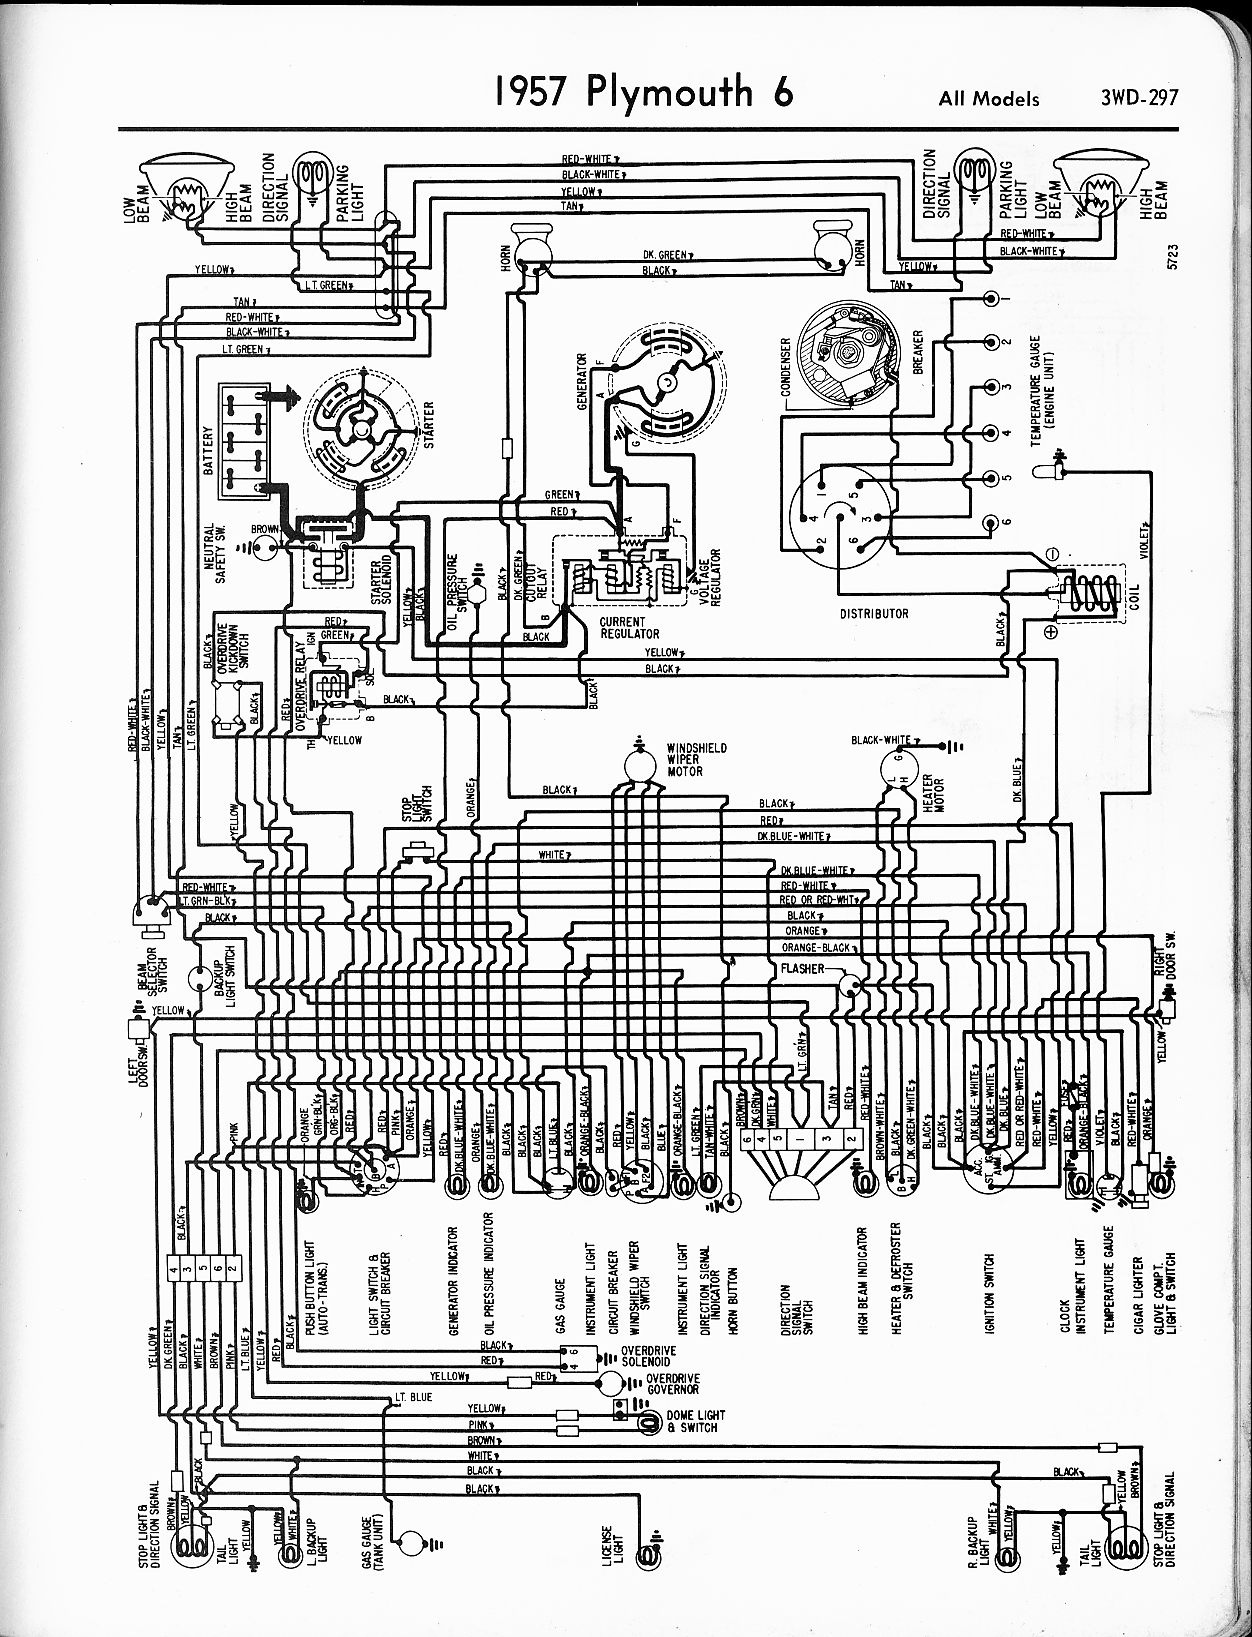 1967 Plymouth Wiring Diagram Electric Single Pick Up Guitar Wiring Diagrams For Wiring Diagram Schematics